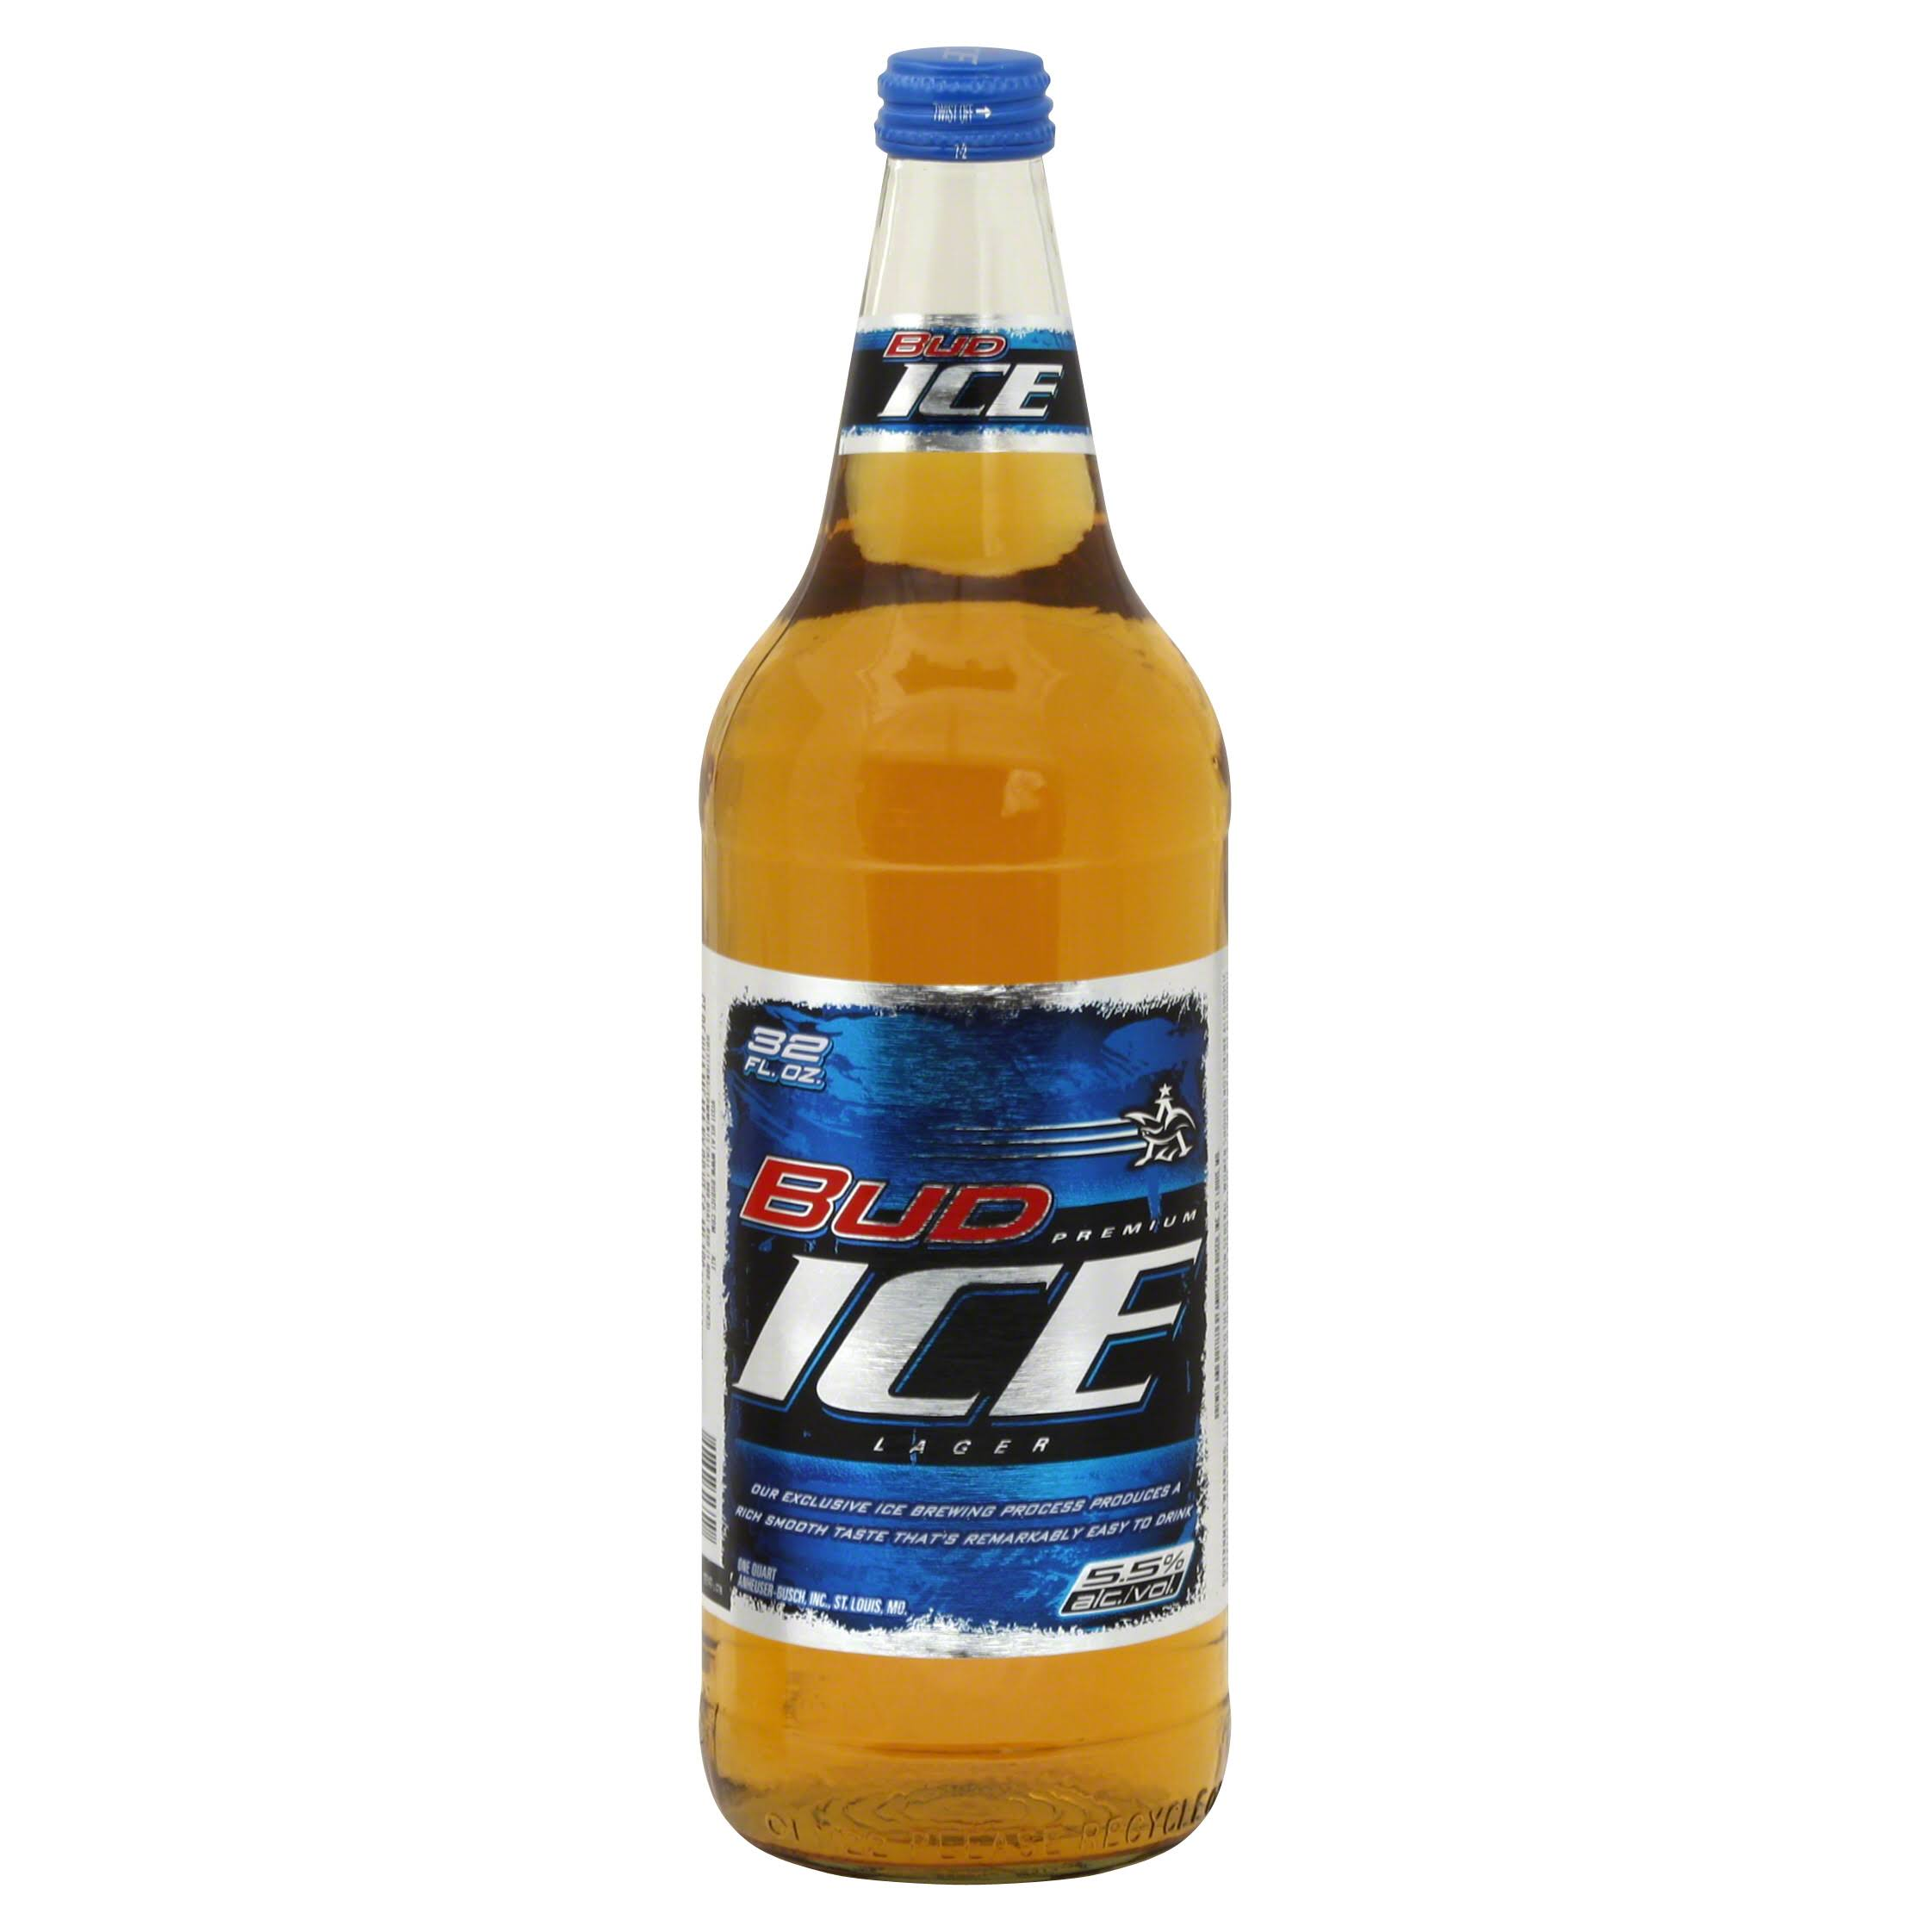 Bud Ice Beer - 32oz